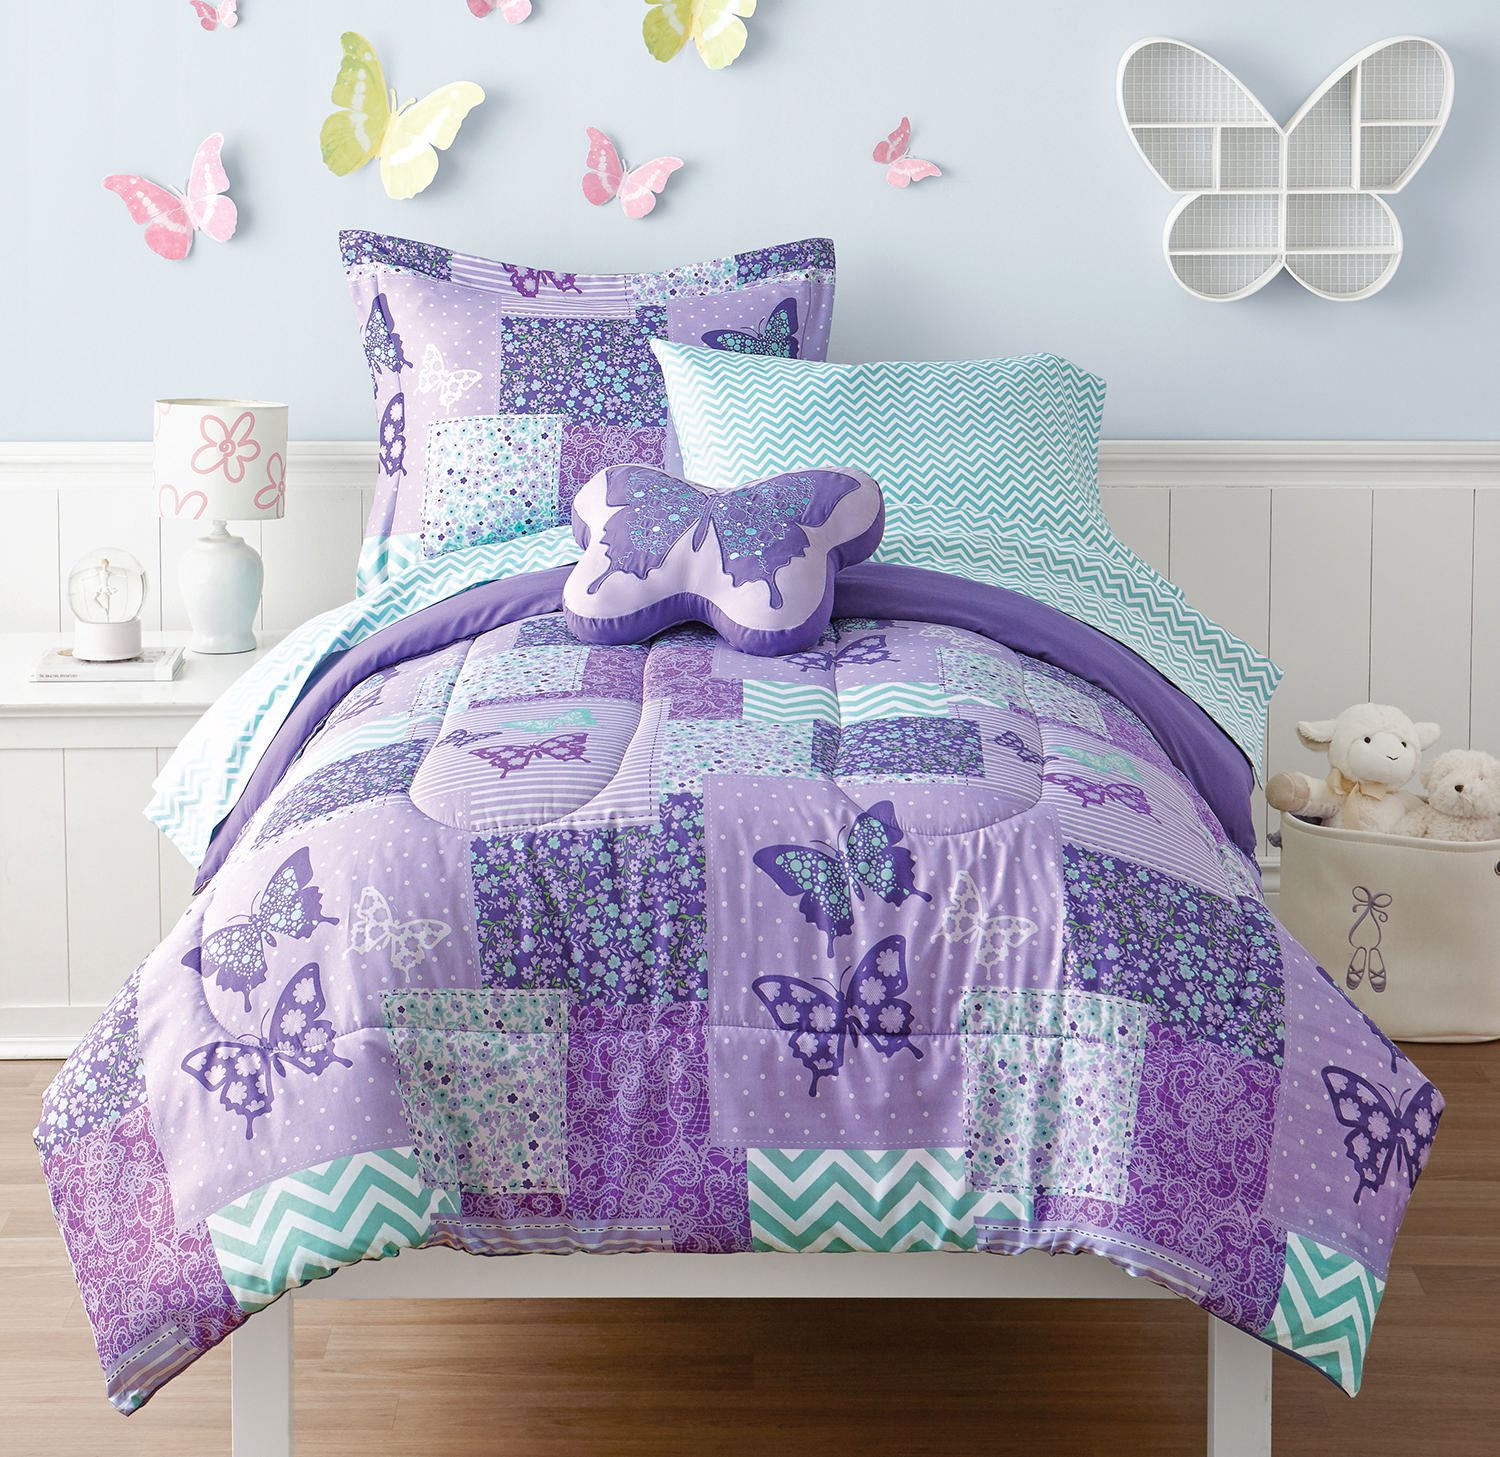 little bedding pink full pin comforter floral quilt daisy queen set butterfly twin girls bedspread blue